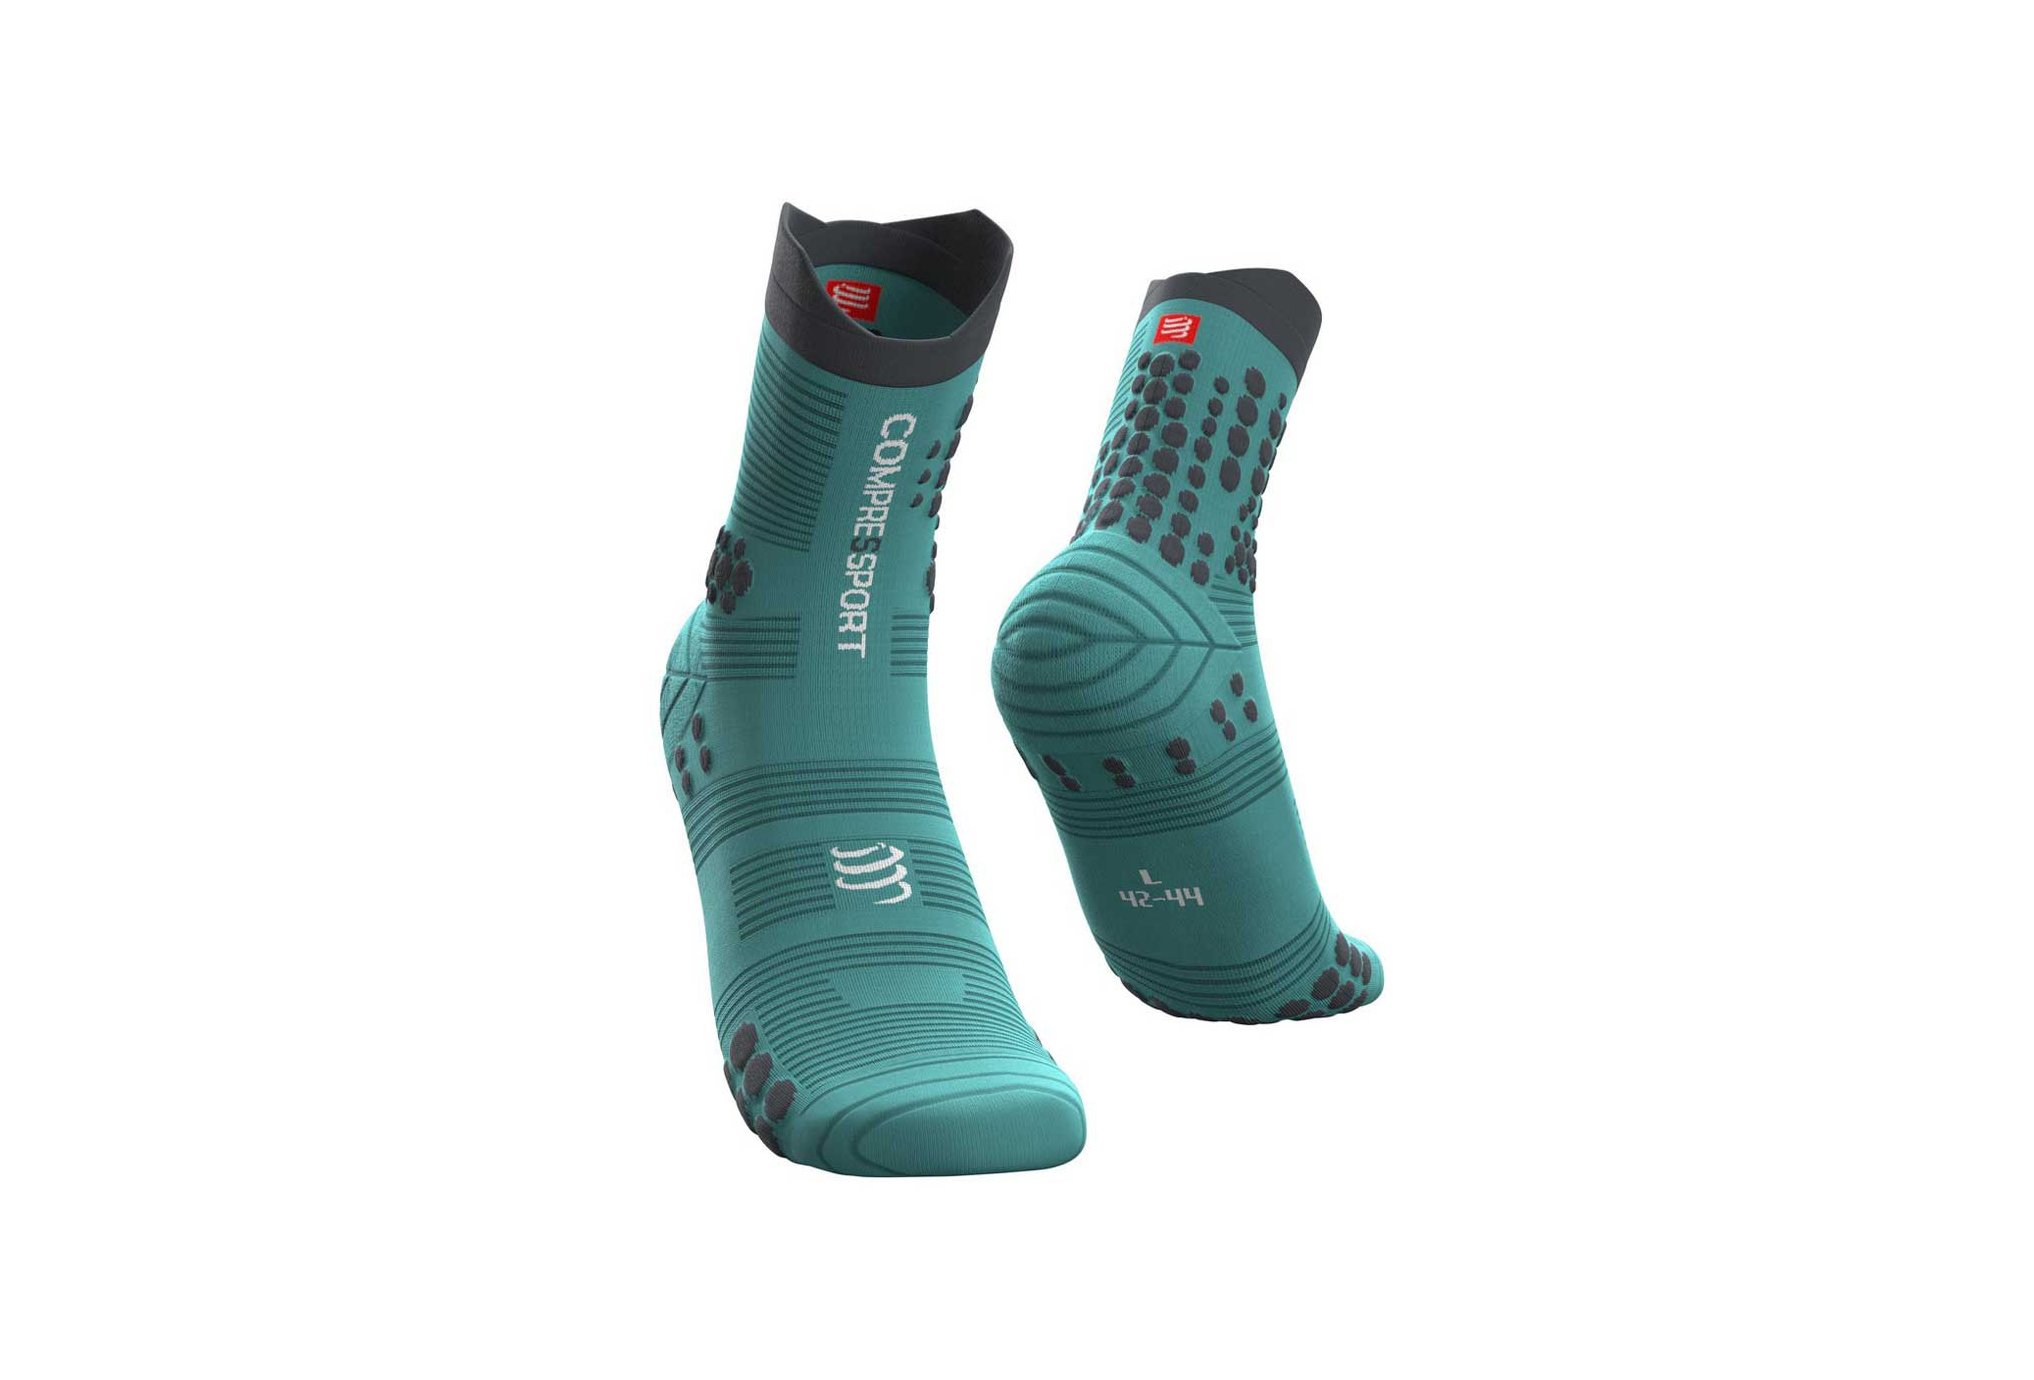 Compressport Pro Racing V 3.0 Trail Chaussettes